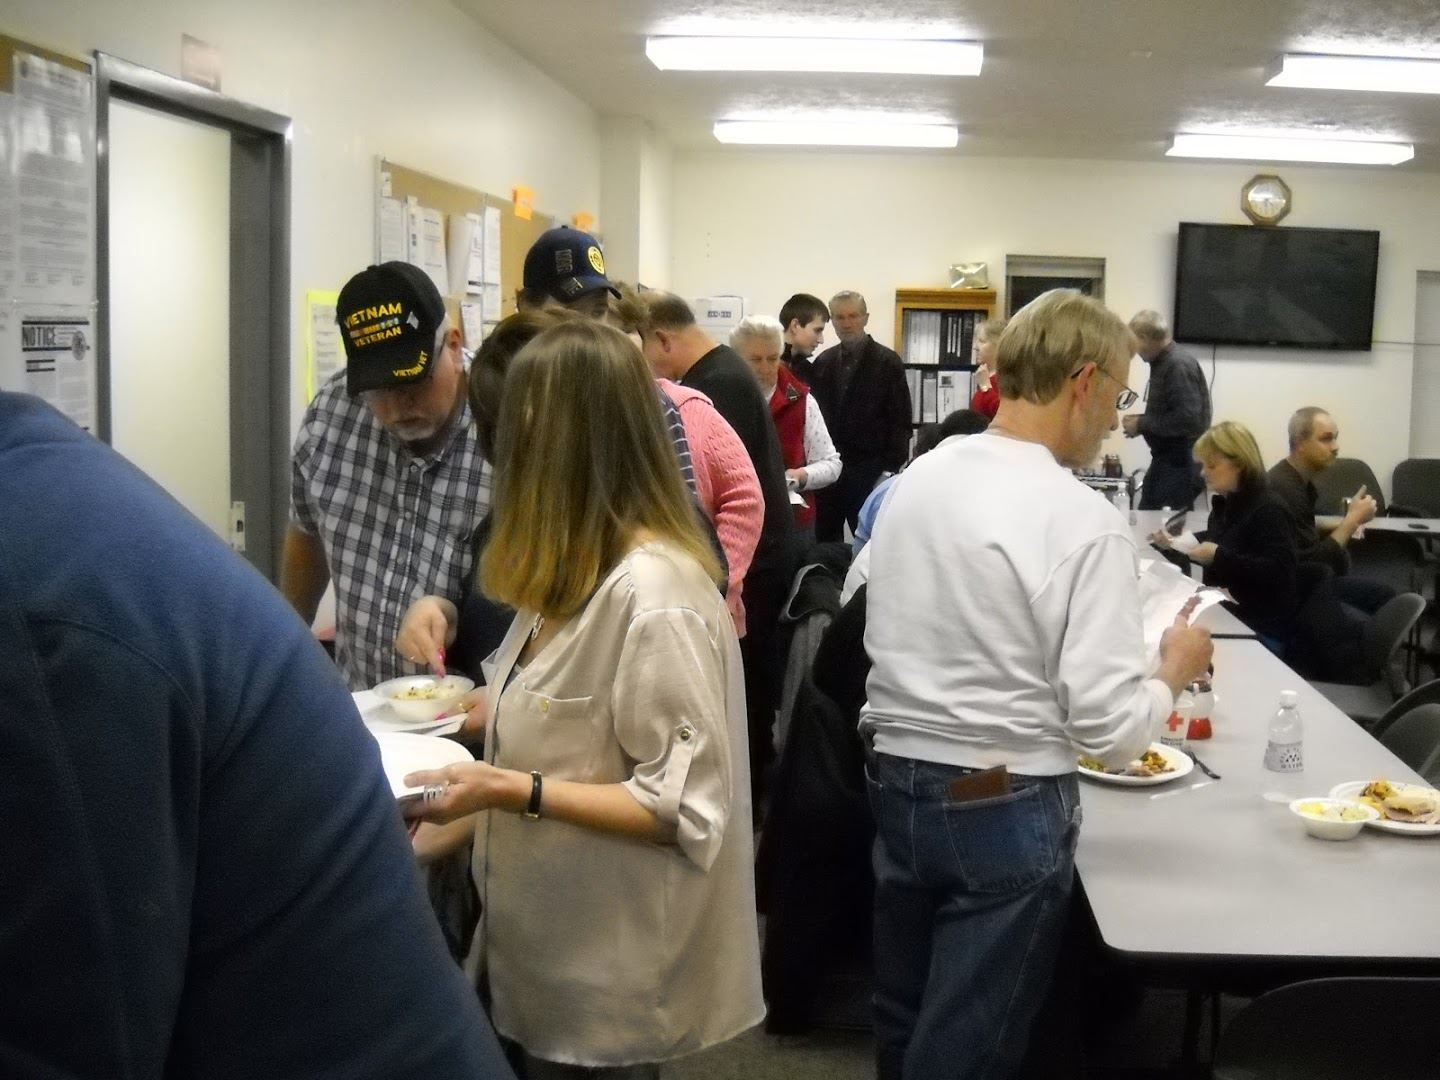 2014 Christmas Potluck, people standing in buffet line serving themselves